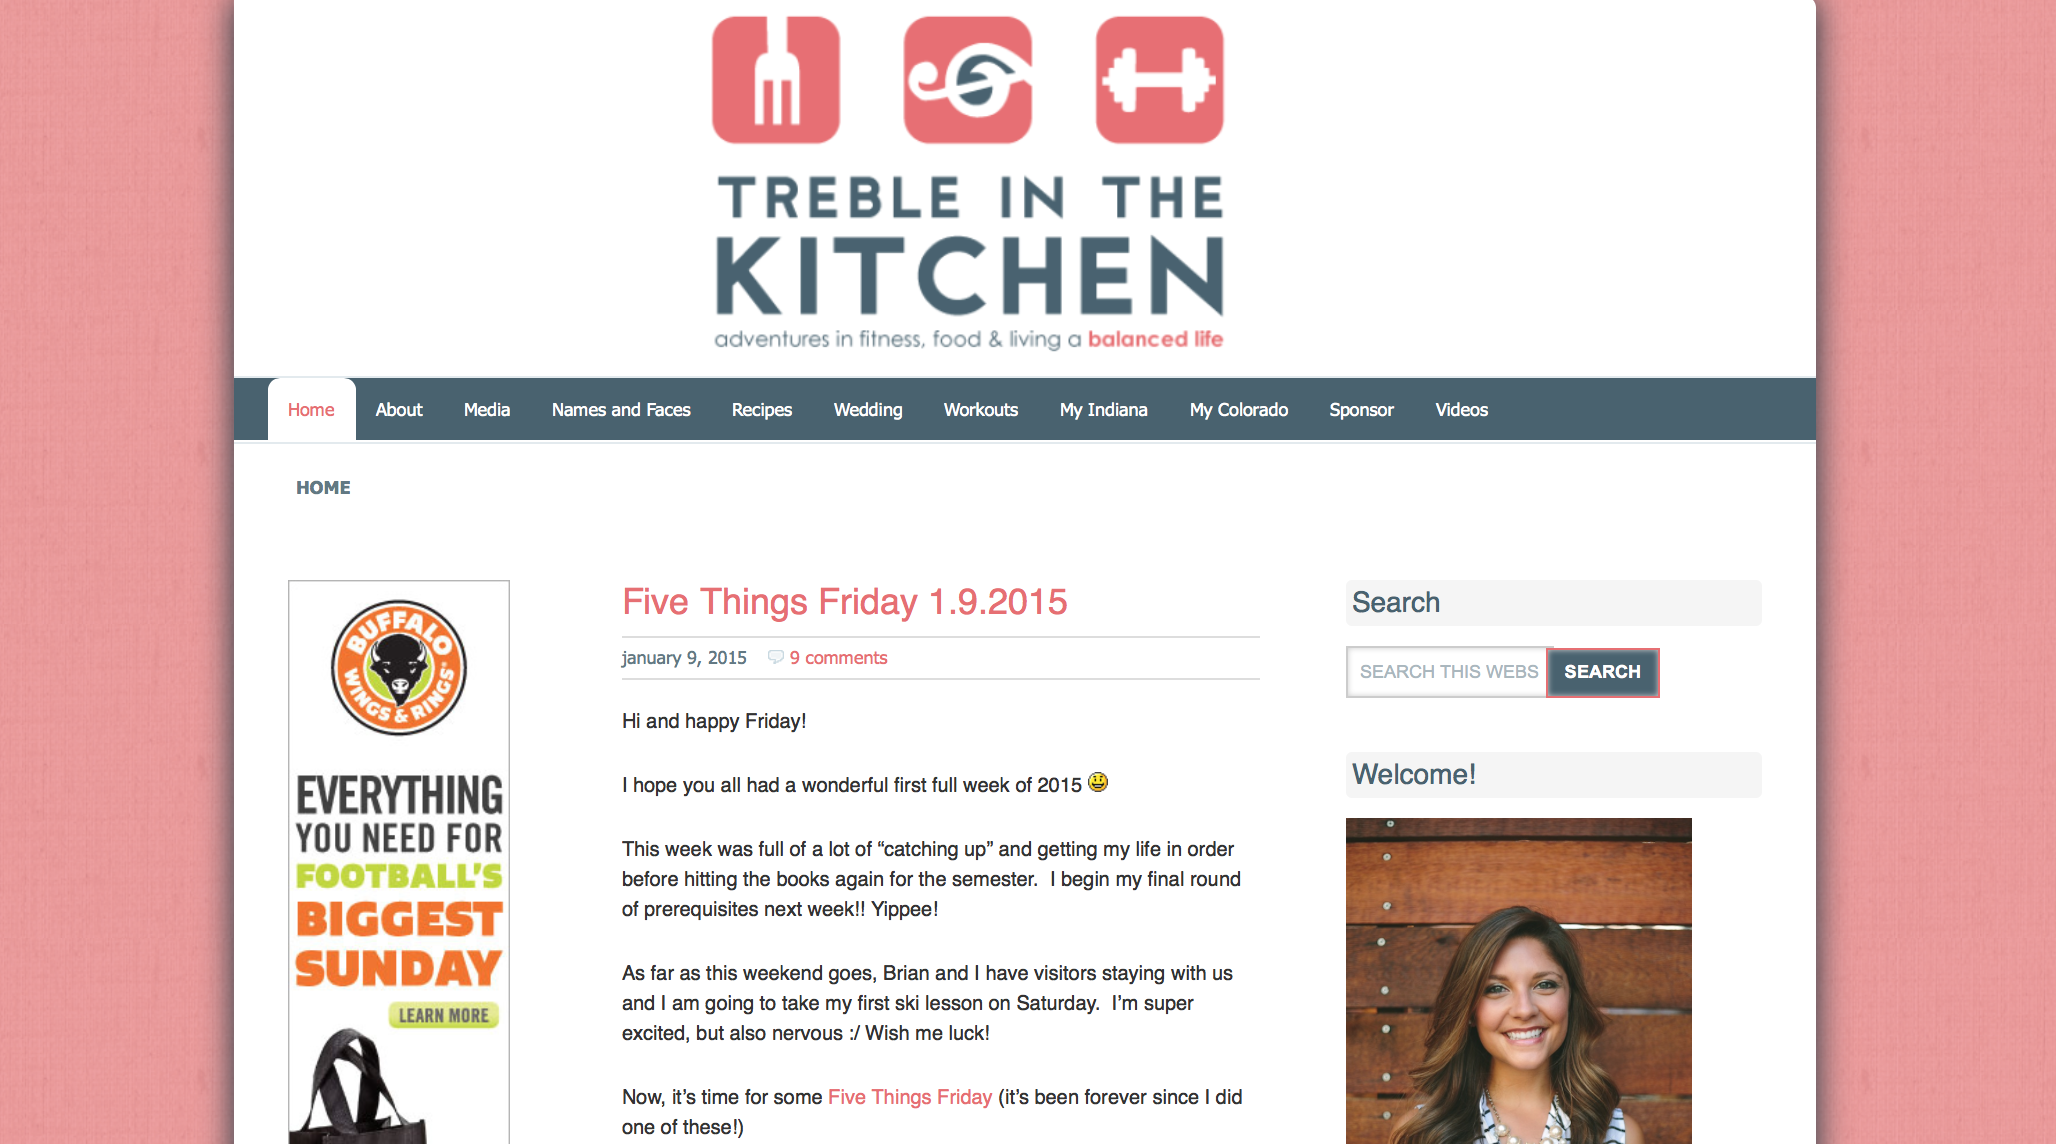 Trebel in the Kitchen - Healthy Lifestyle and Fitness Blog